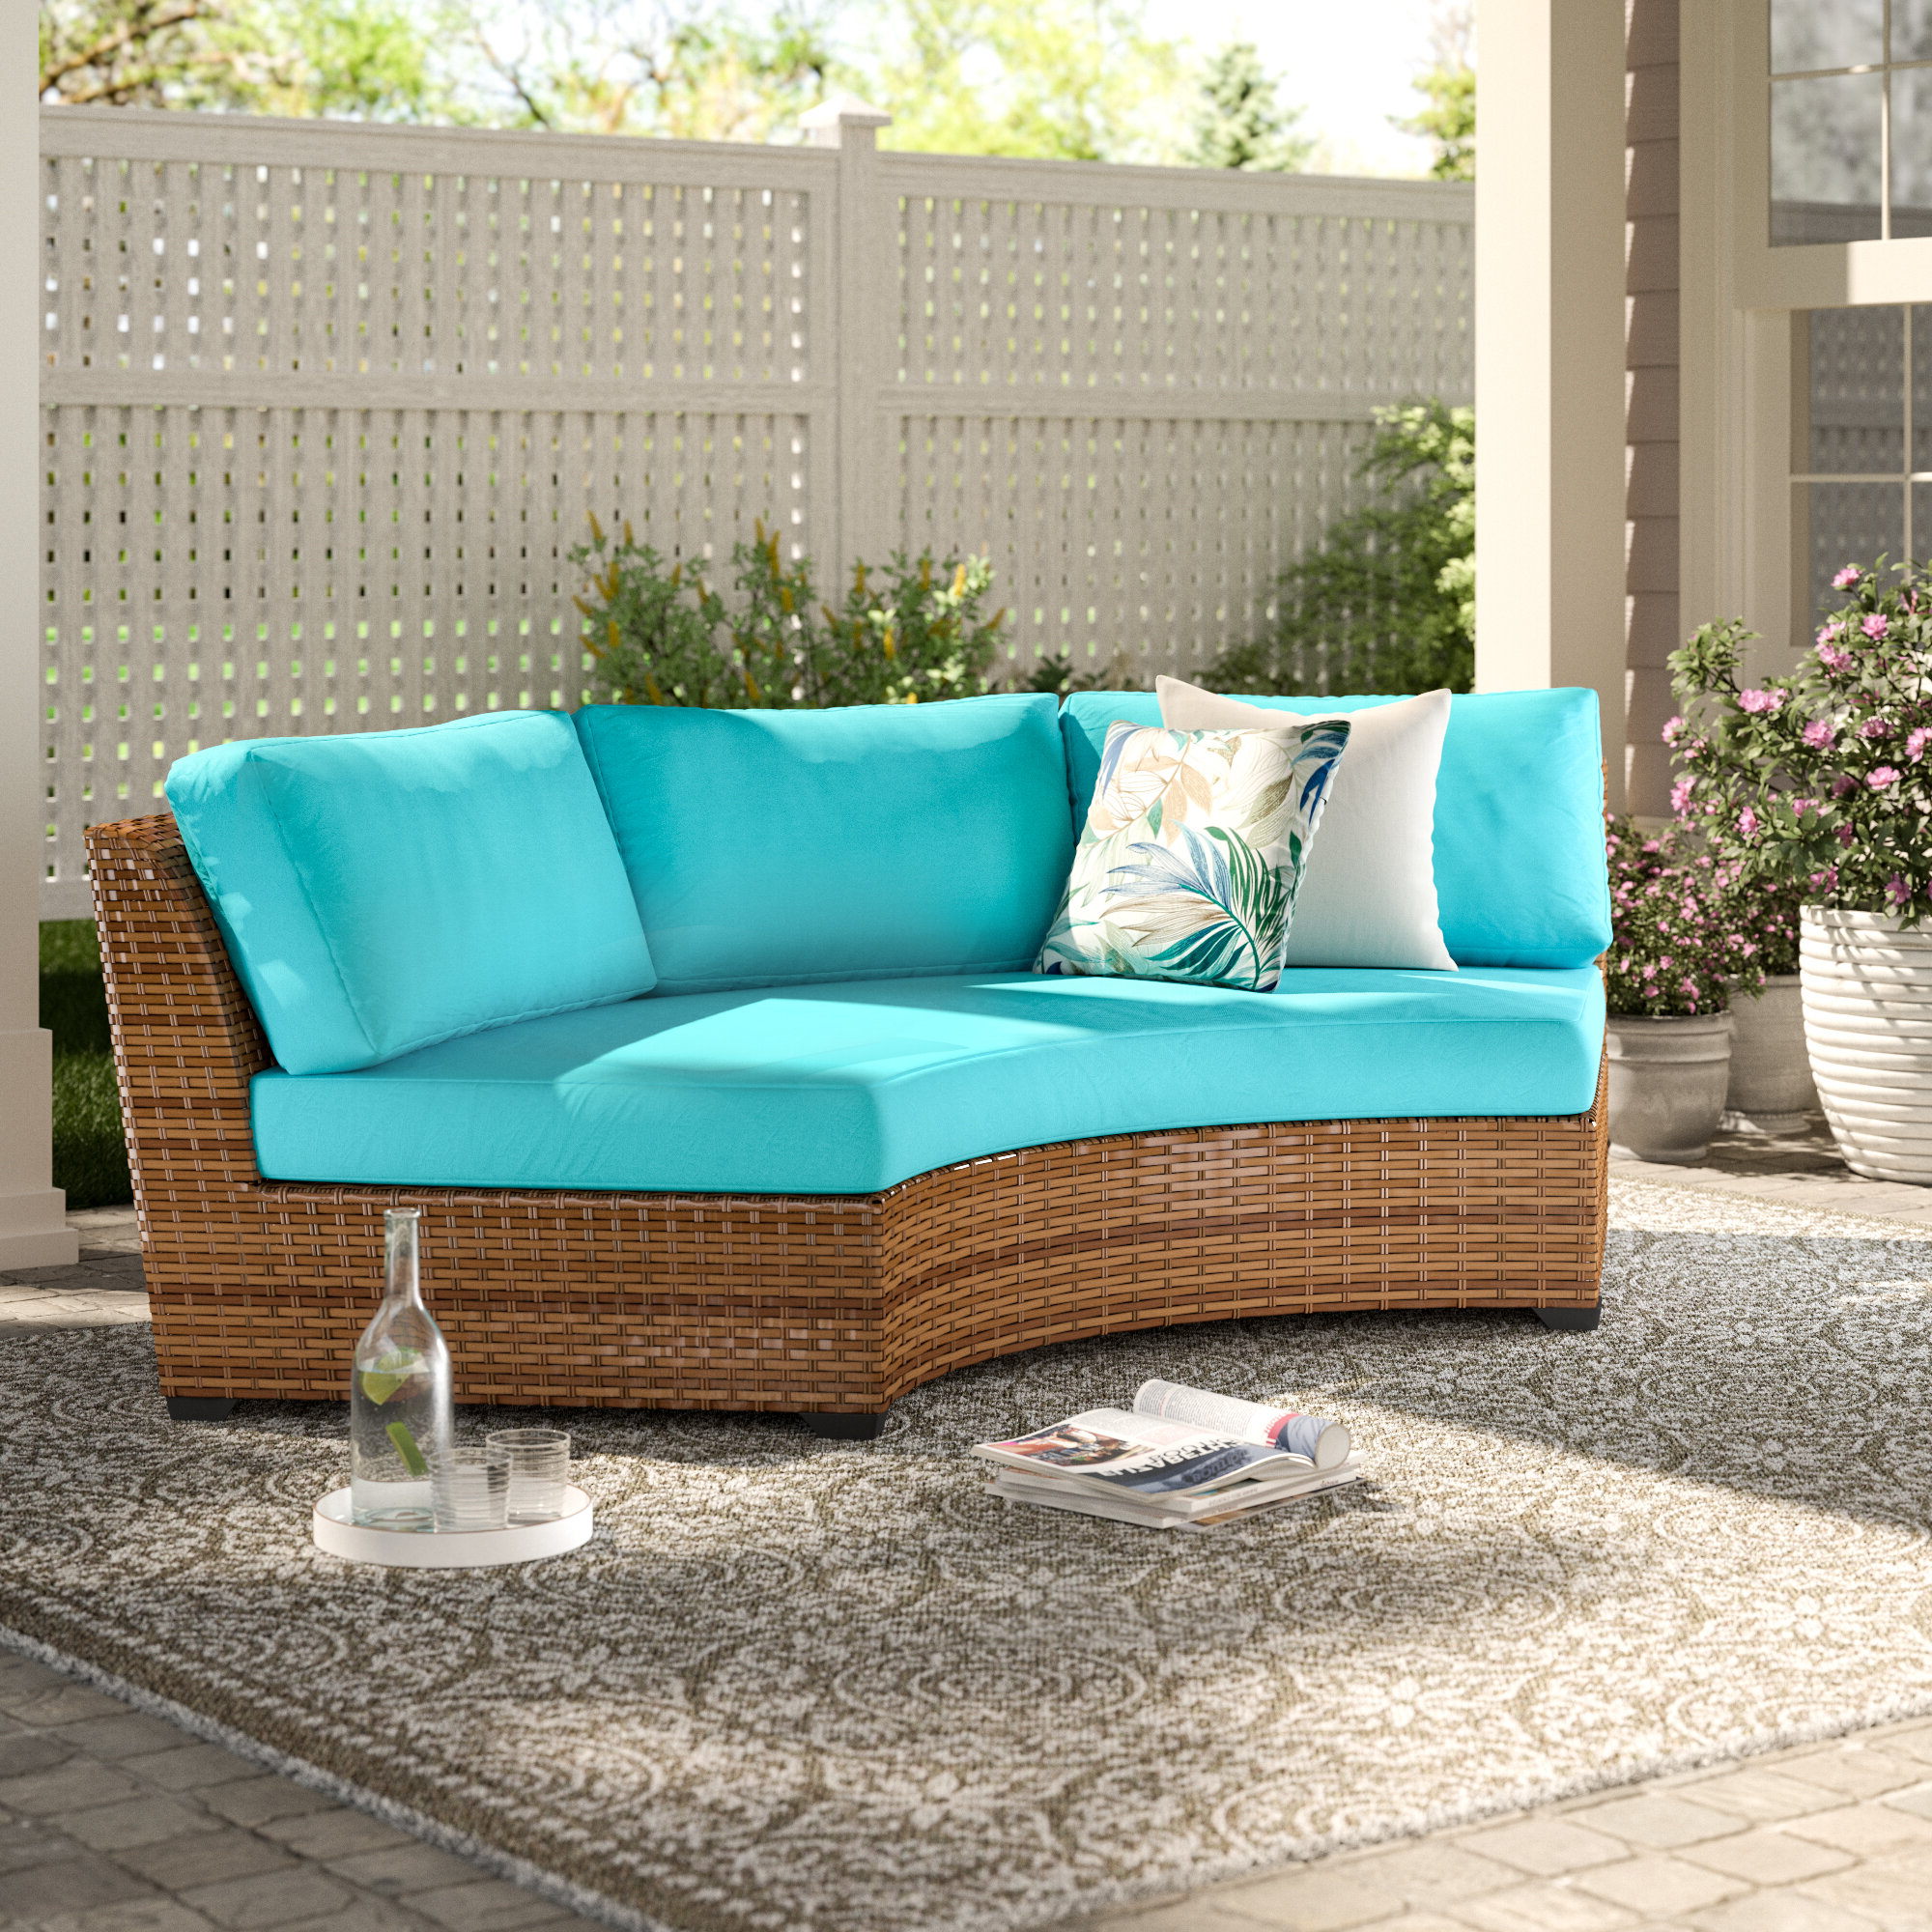 Waterbury Patio Sectionals With Cushions In Famous Waterbury Patio Sofa With Cushions (Gallery 1 of 25)